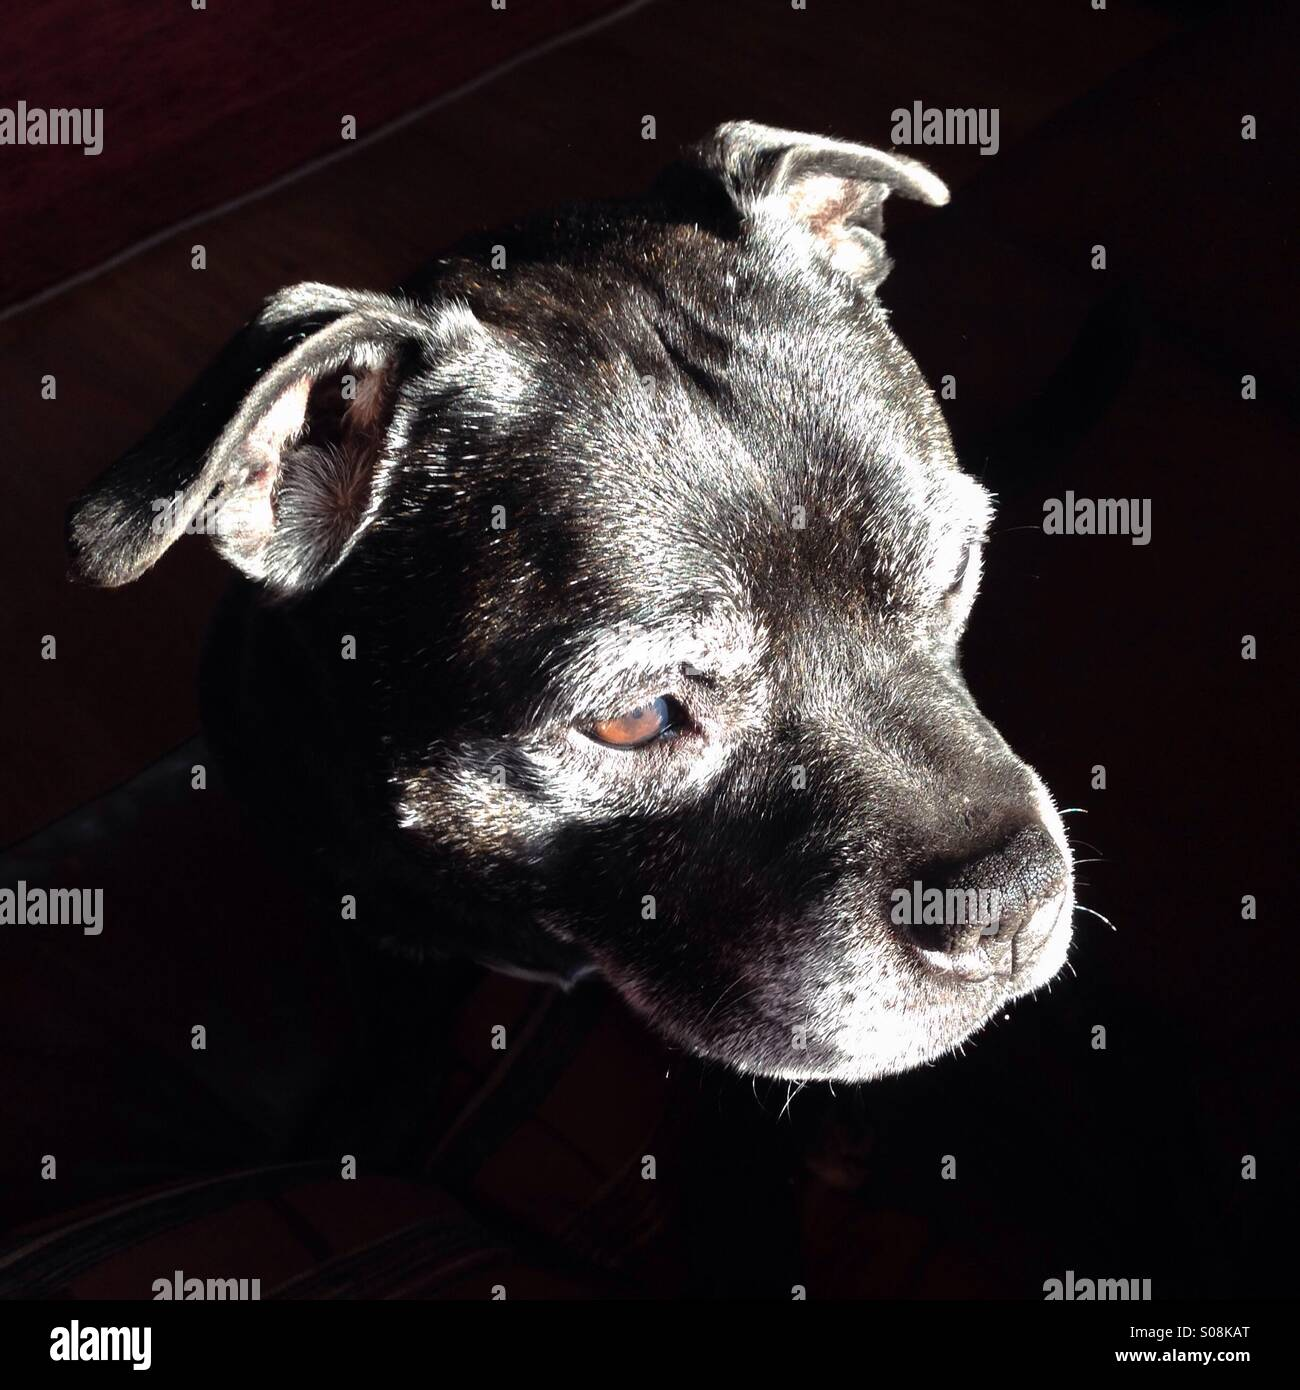 Staffordshire Bull Terrier dog lit by bright sunlight as he looks out of a window. - Stock Image